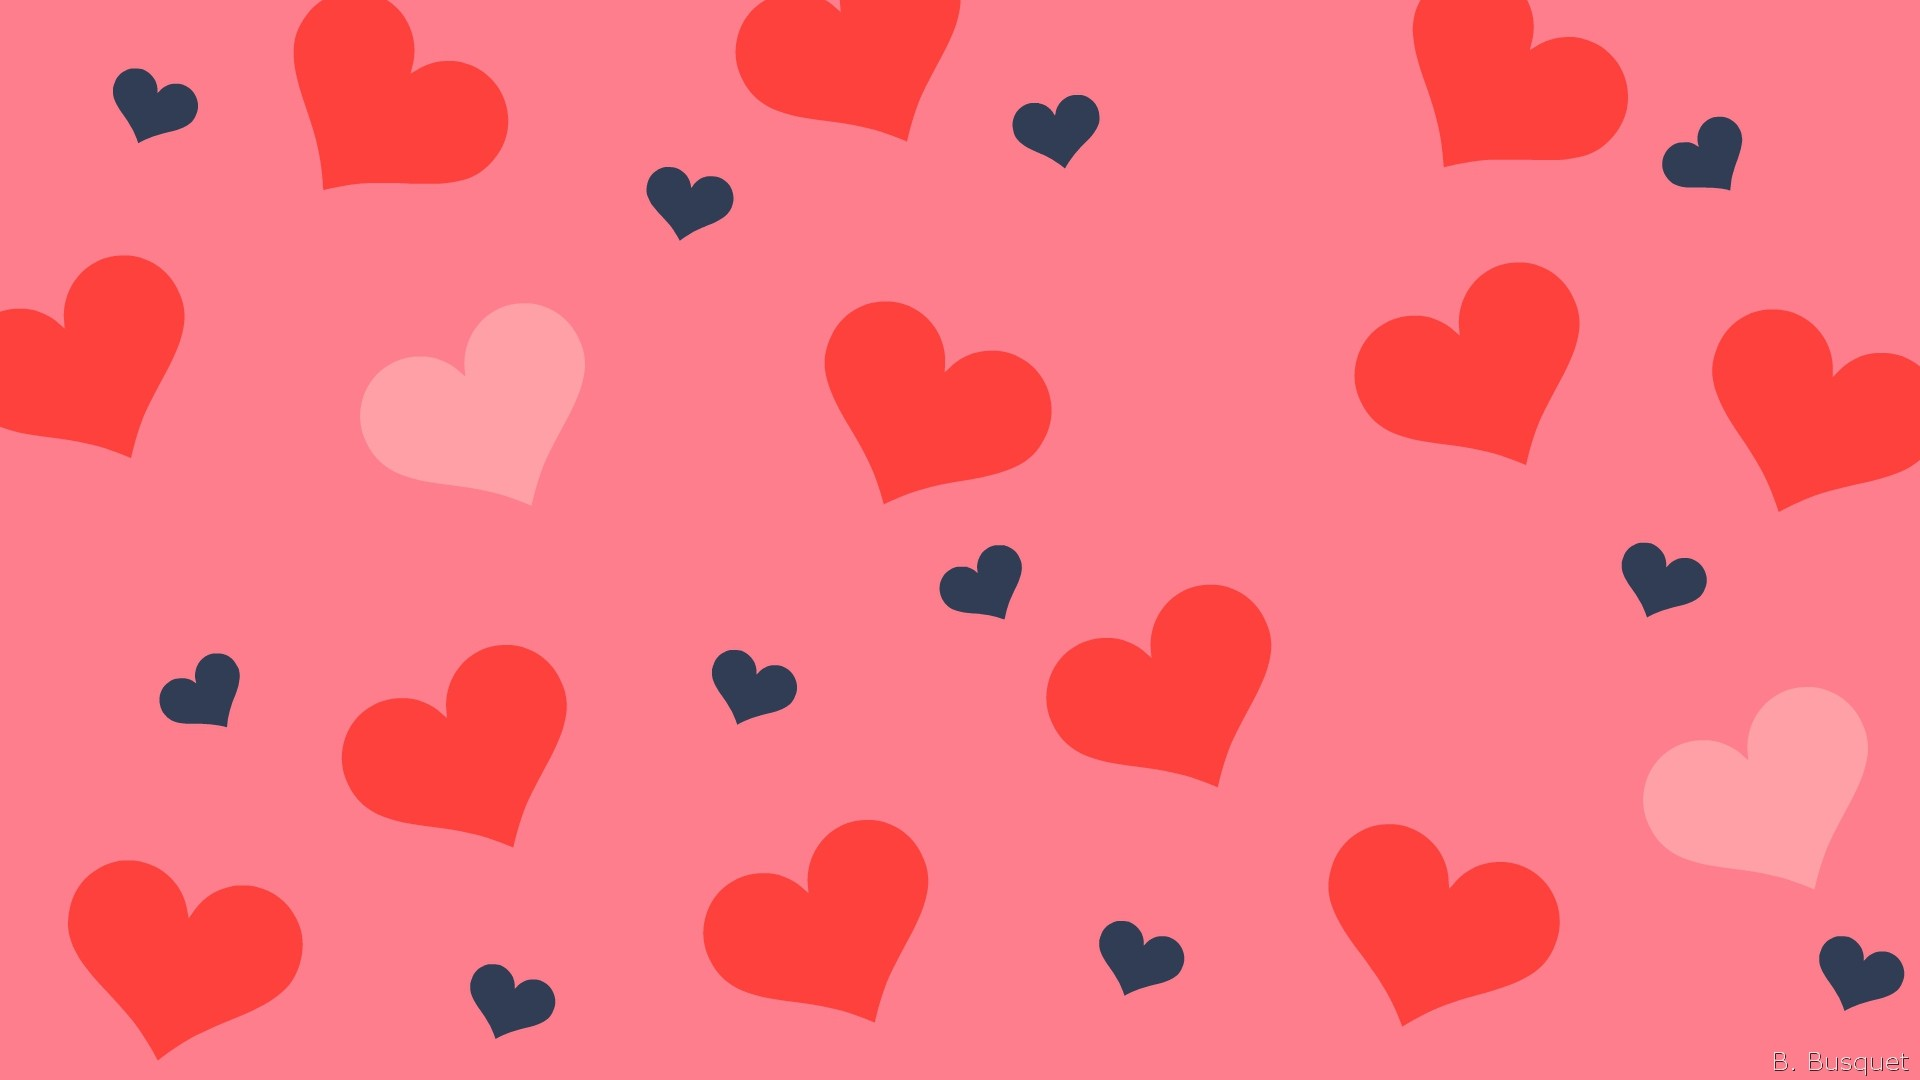 Hearts Wallpapers - Barbaras HD Wallpapers